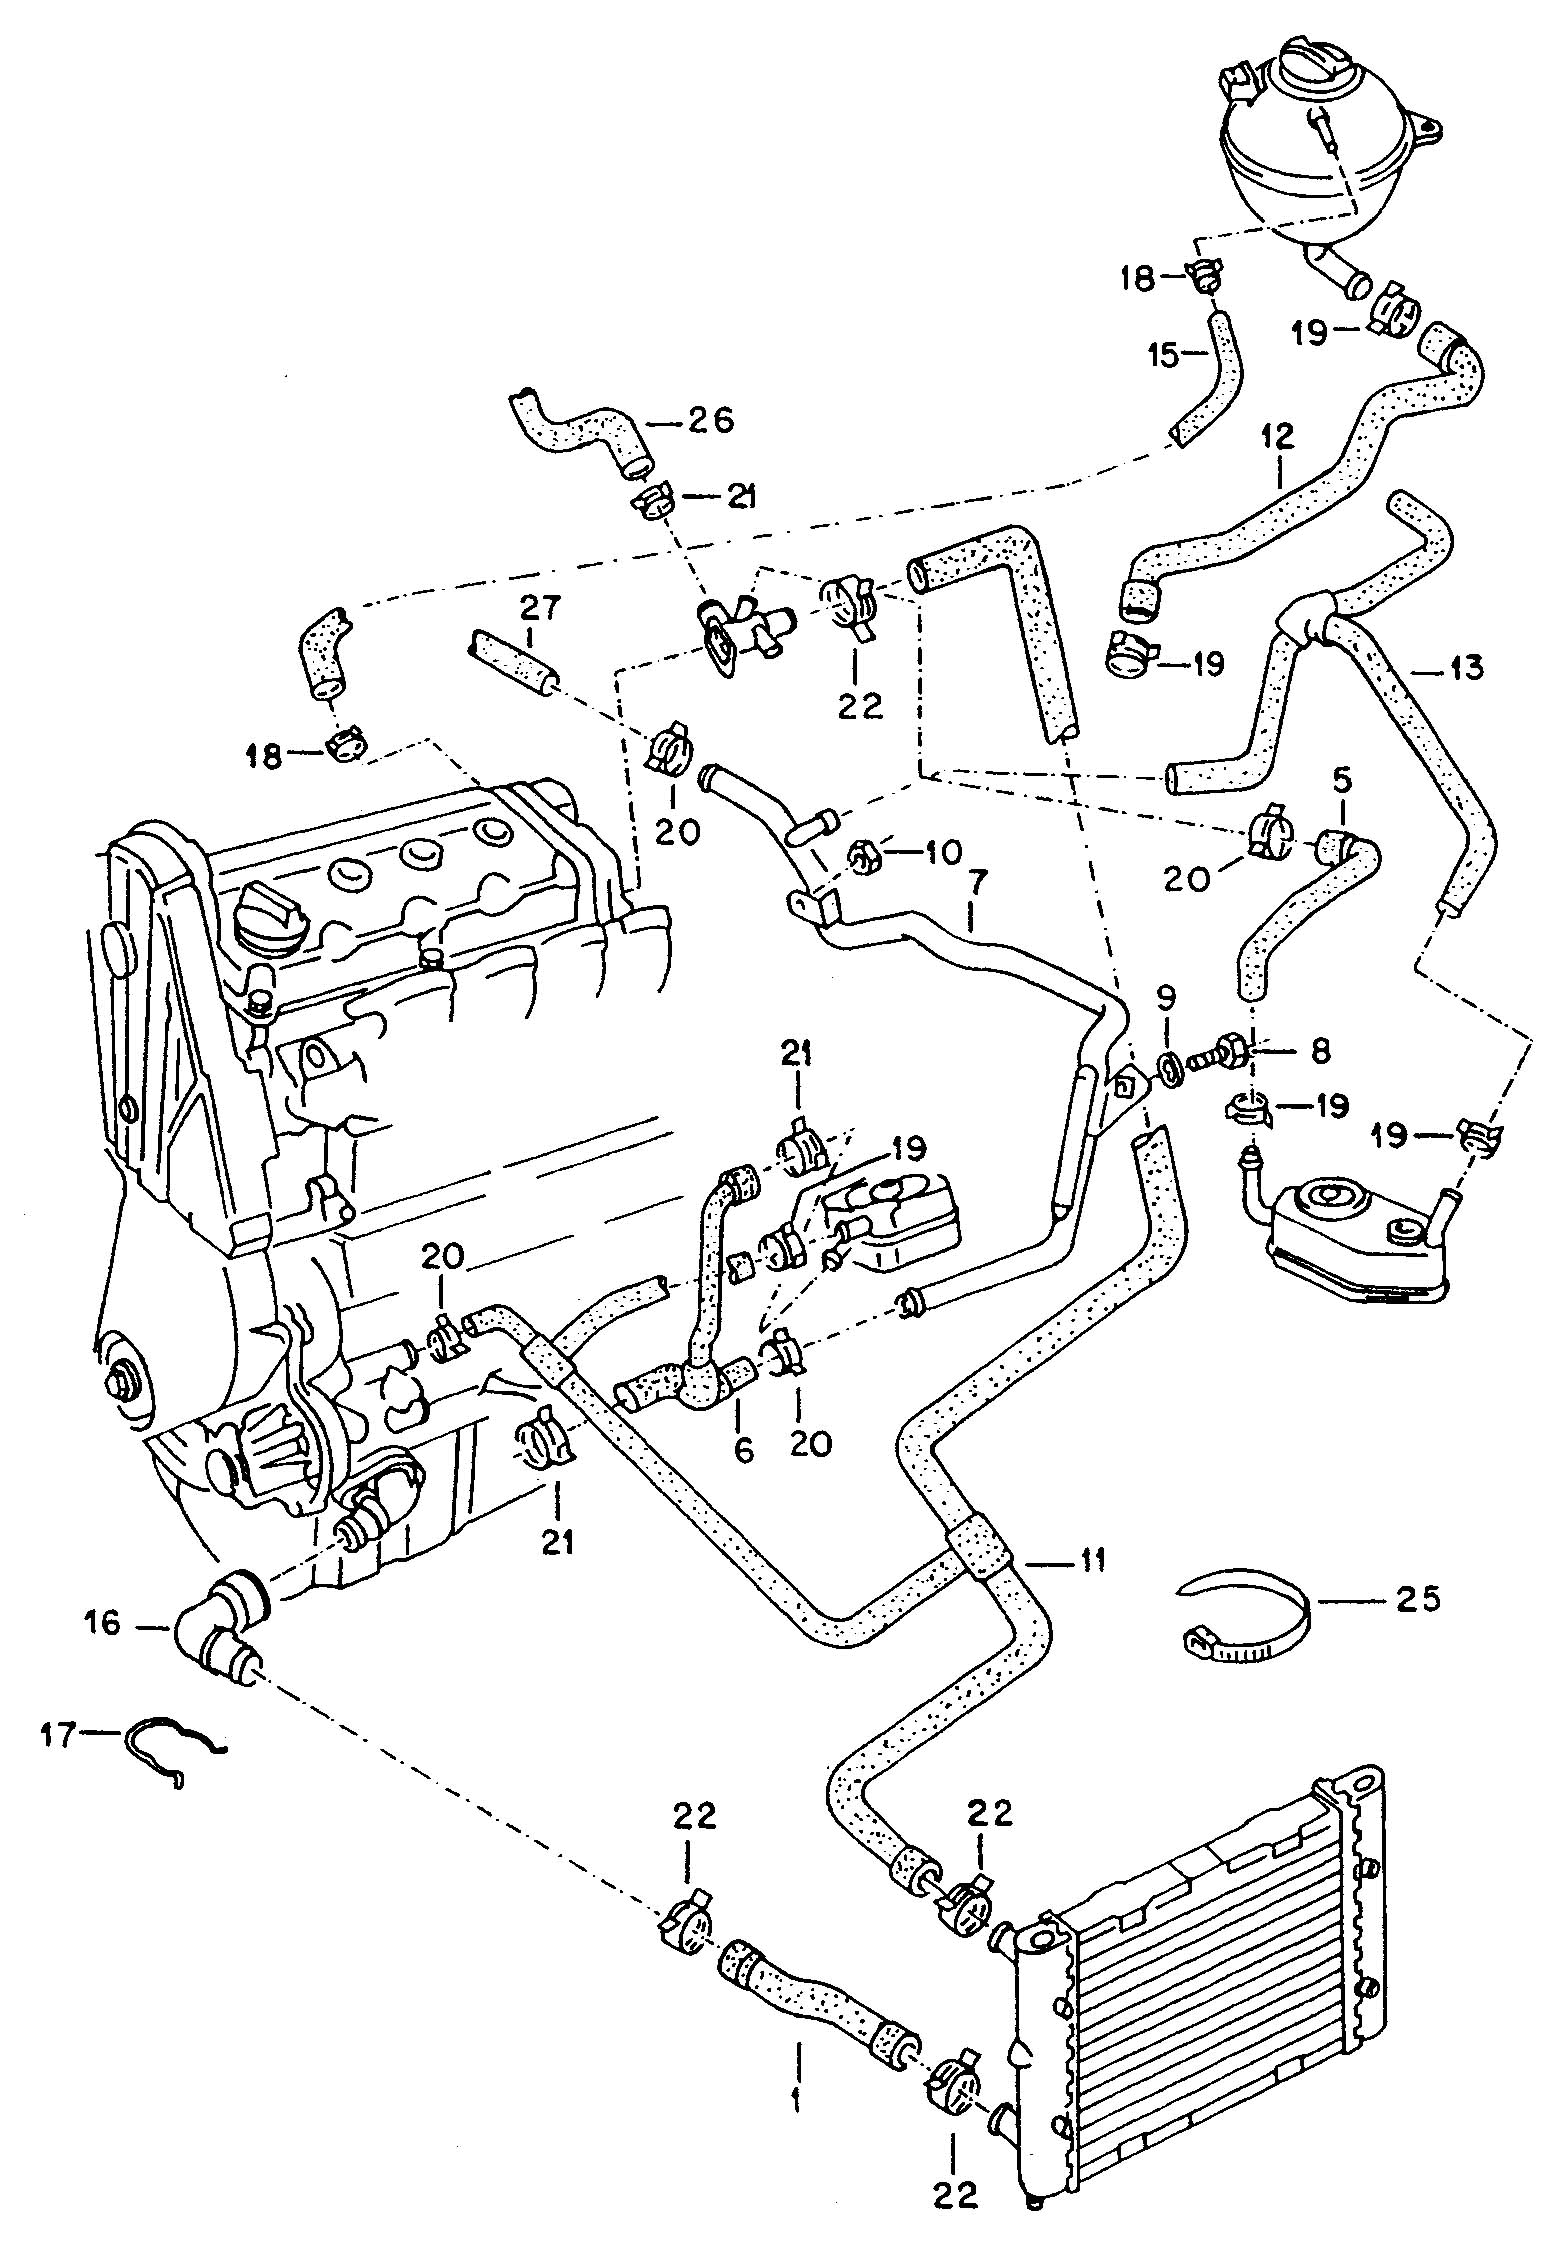 Vw Jetta Parts Diagram